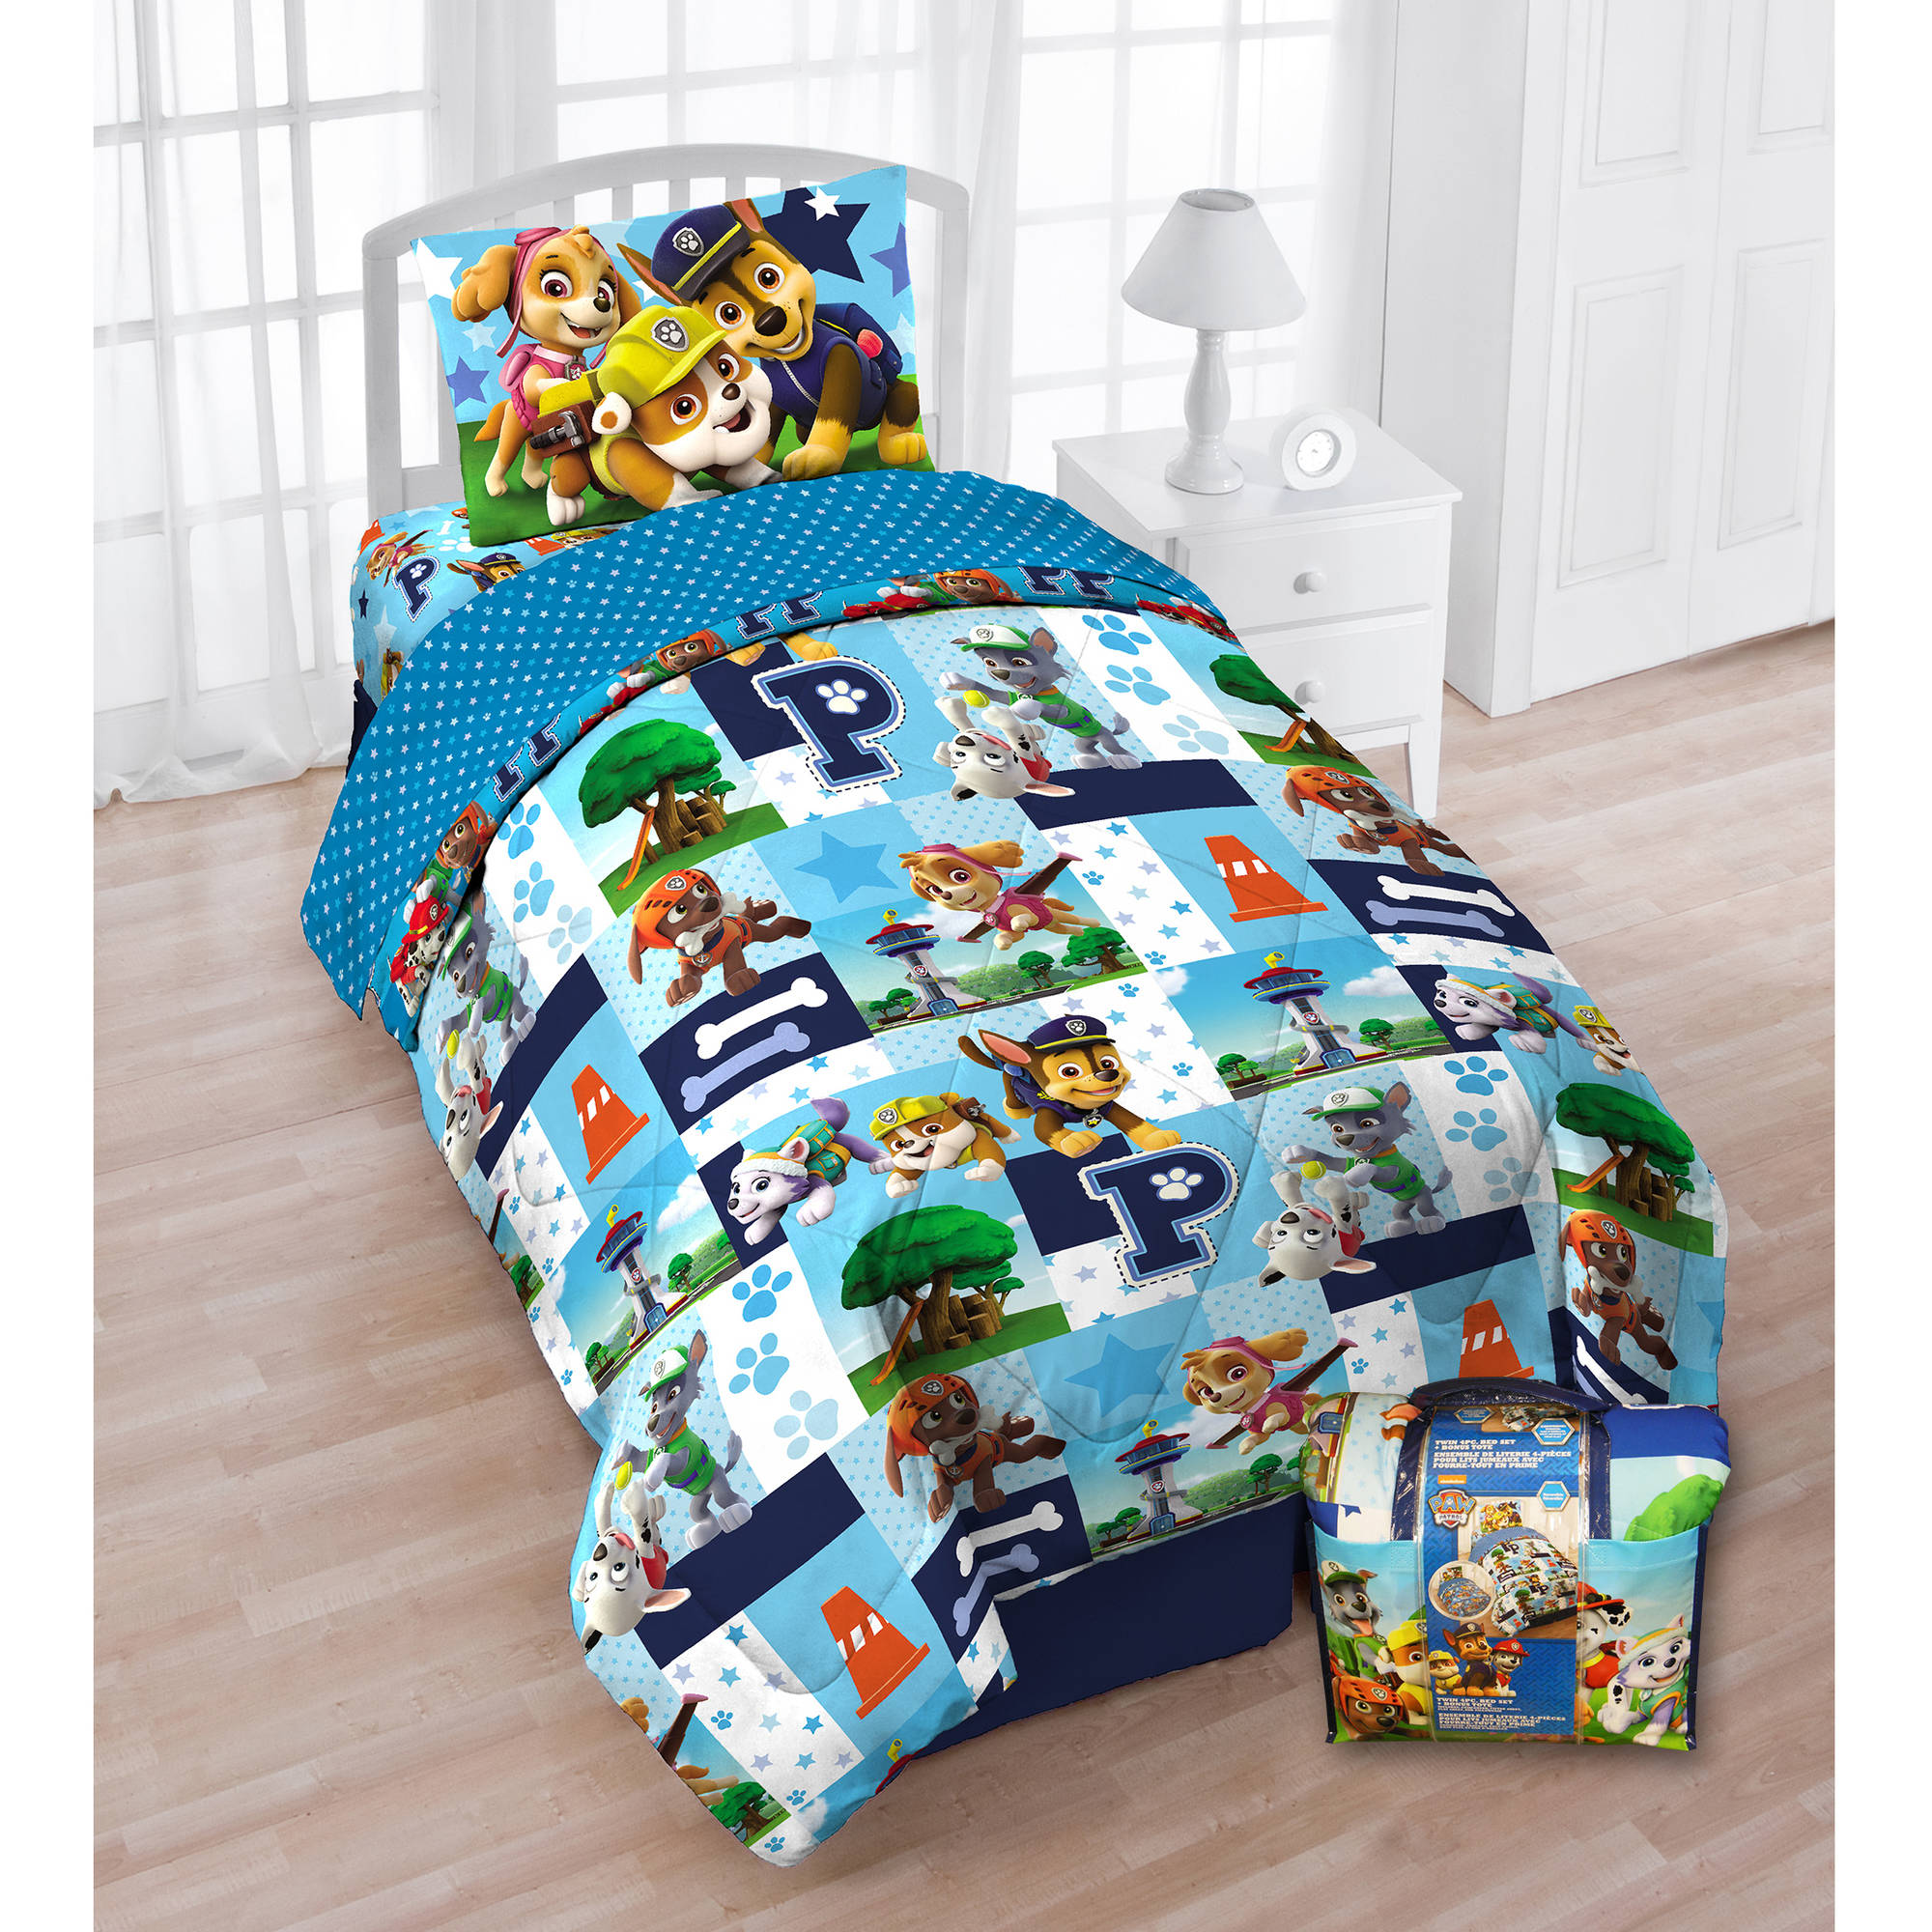 Kids Bedding Walmart